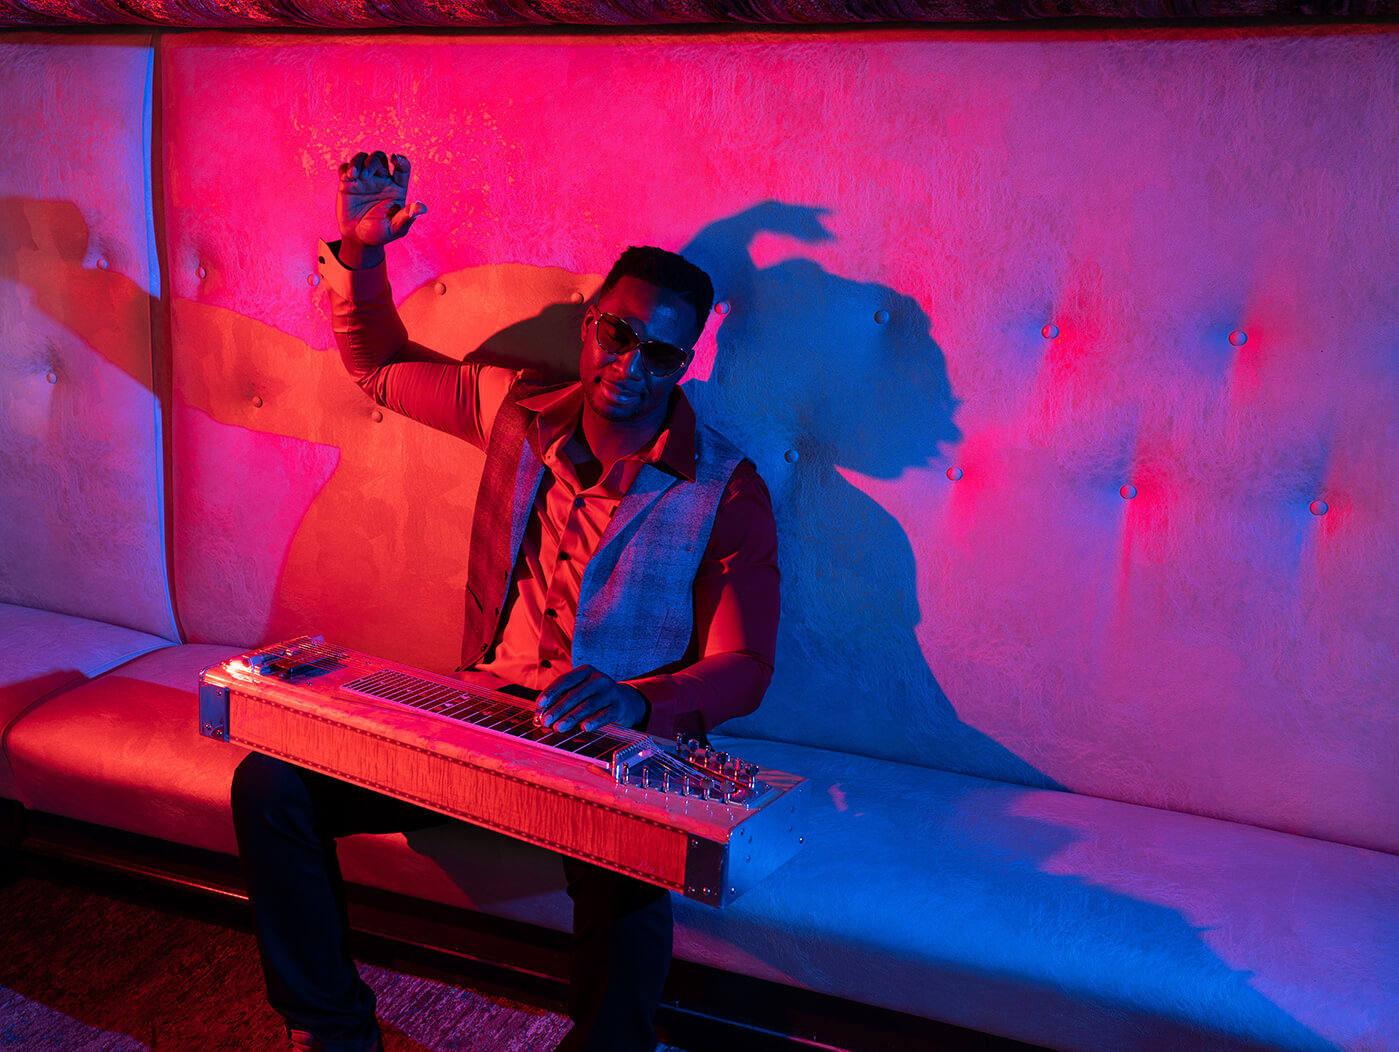 Robert Randolph with lap steel in a club